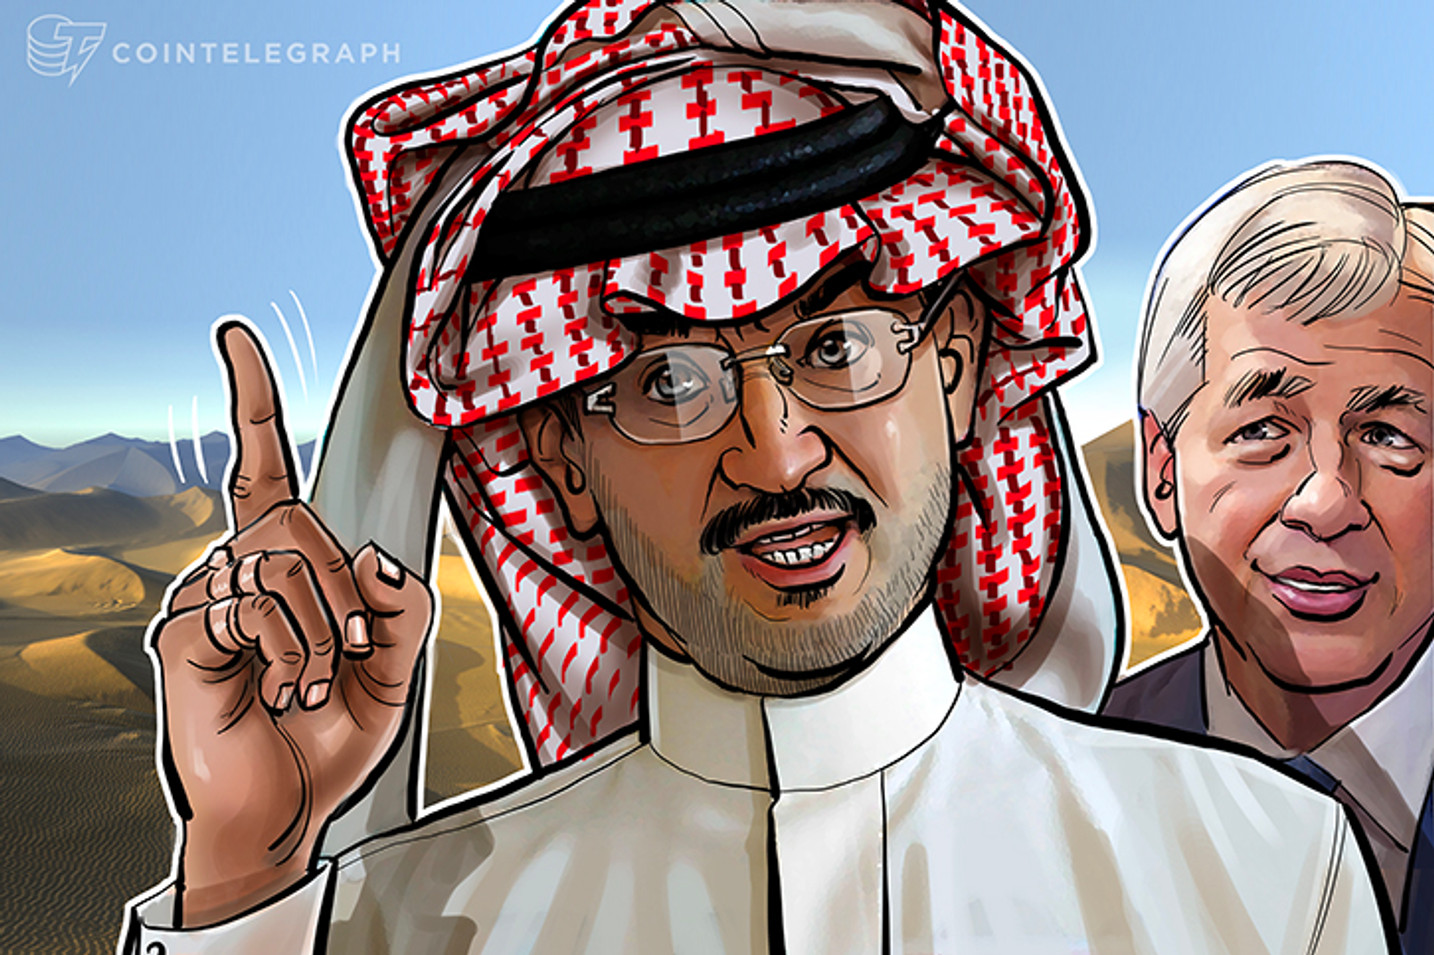 Richest Saudi Prince Says Bitcoin Will Collapse Like Enron